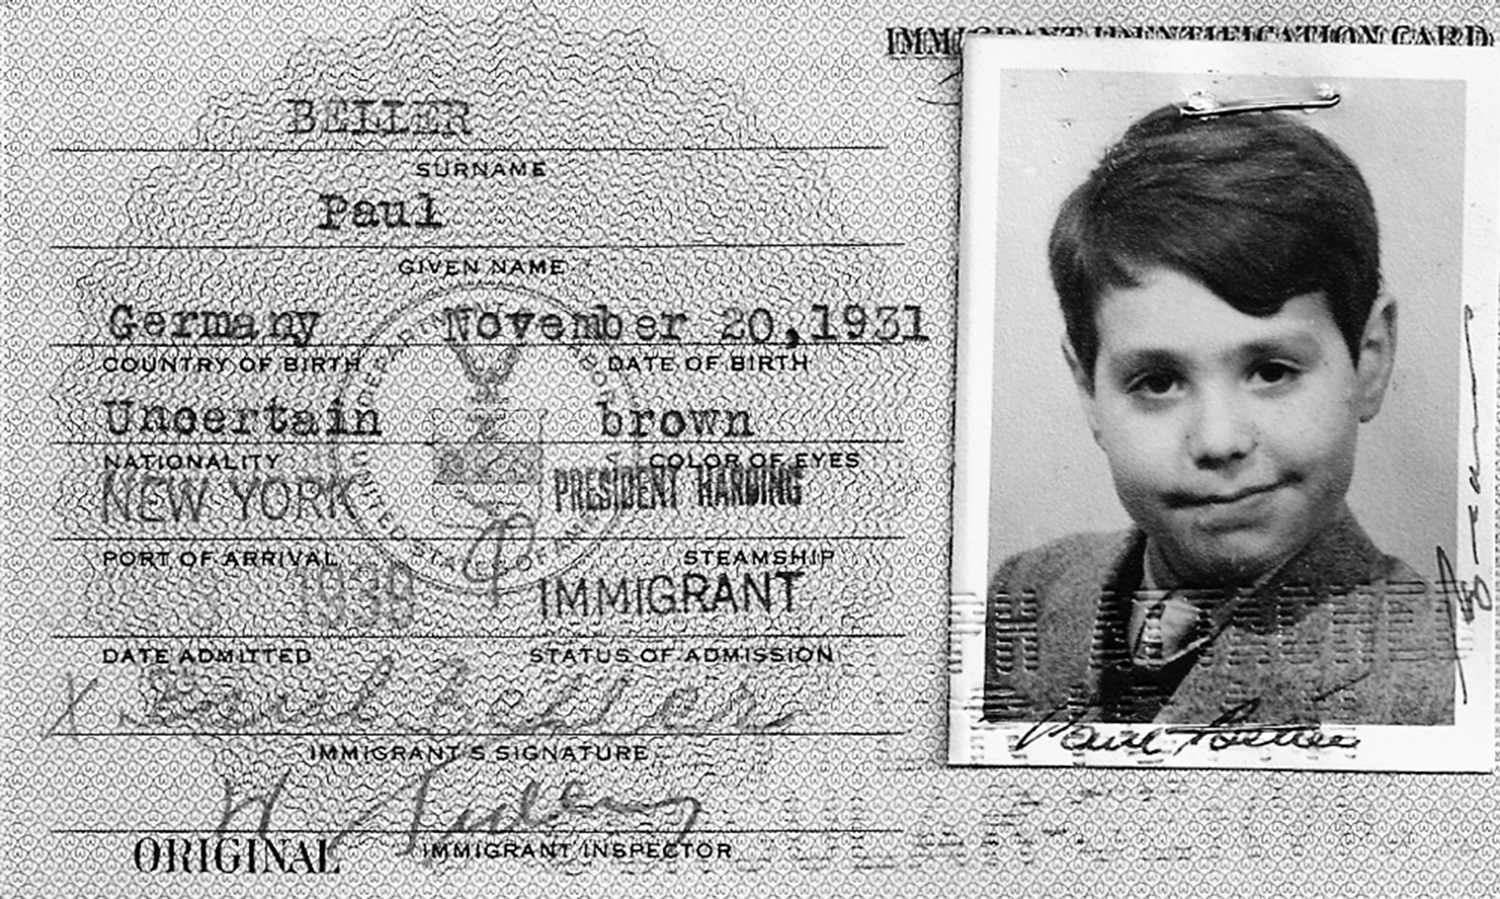 Each child rescued by the Krauses received a U.S. immigration card at the American Embassy in Berlin.